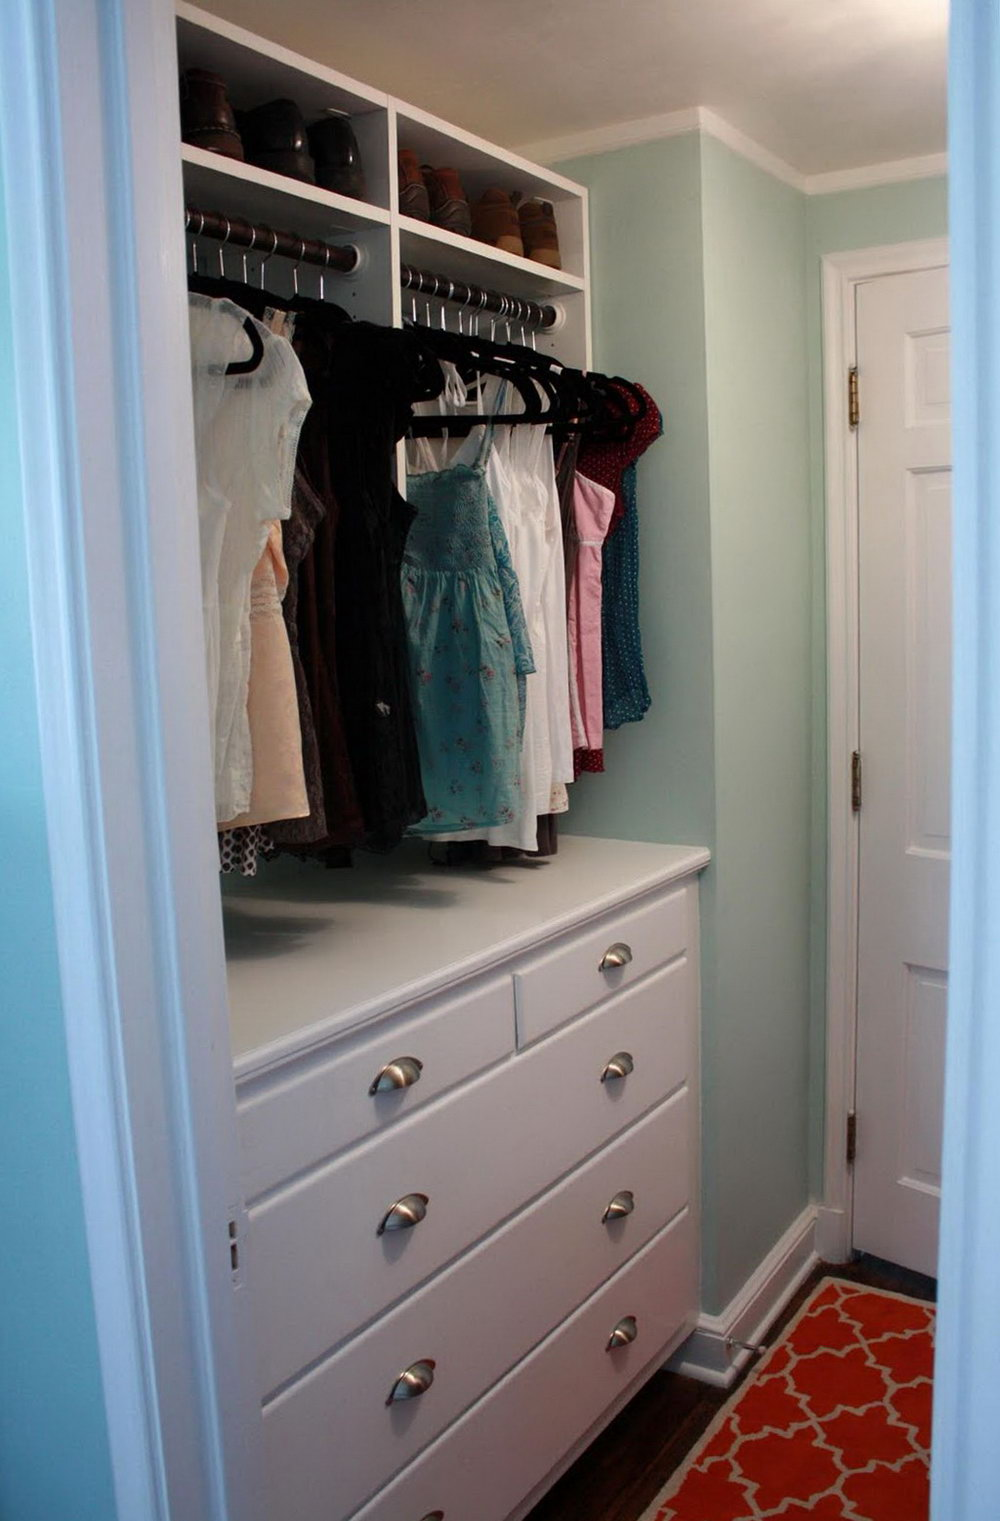 Chest Of Drawers Inside Closet